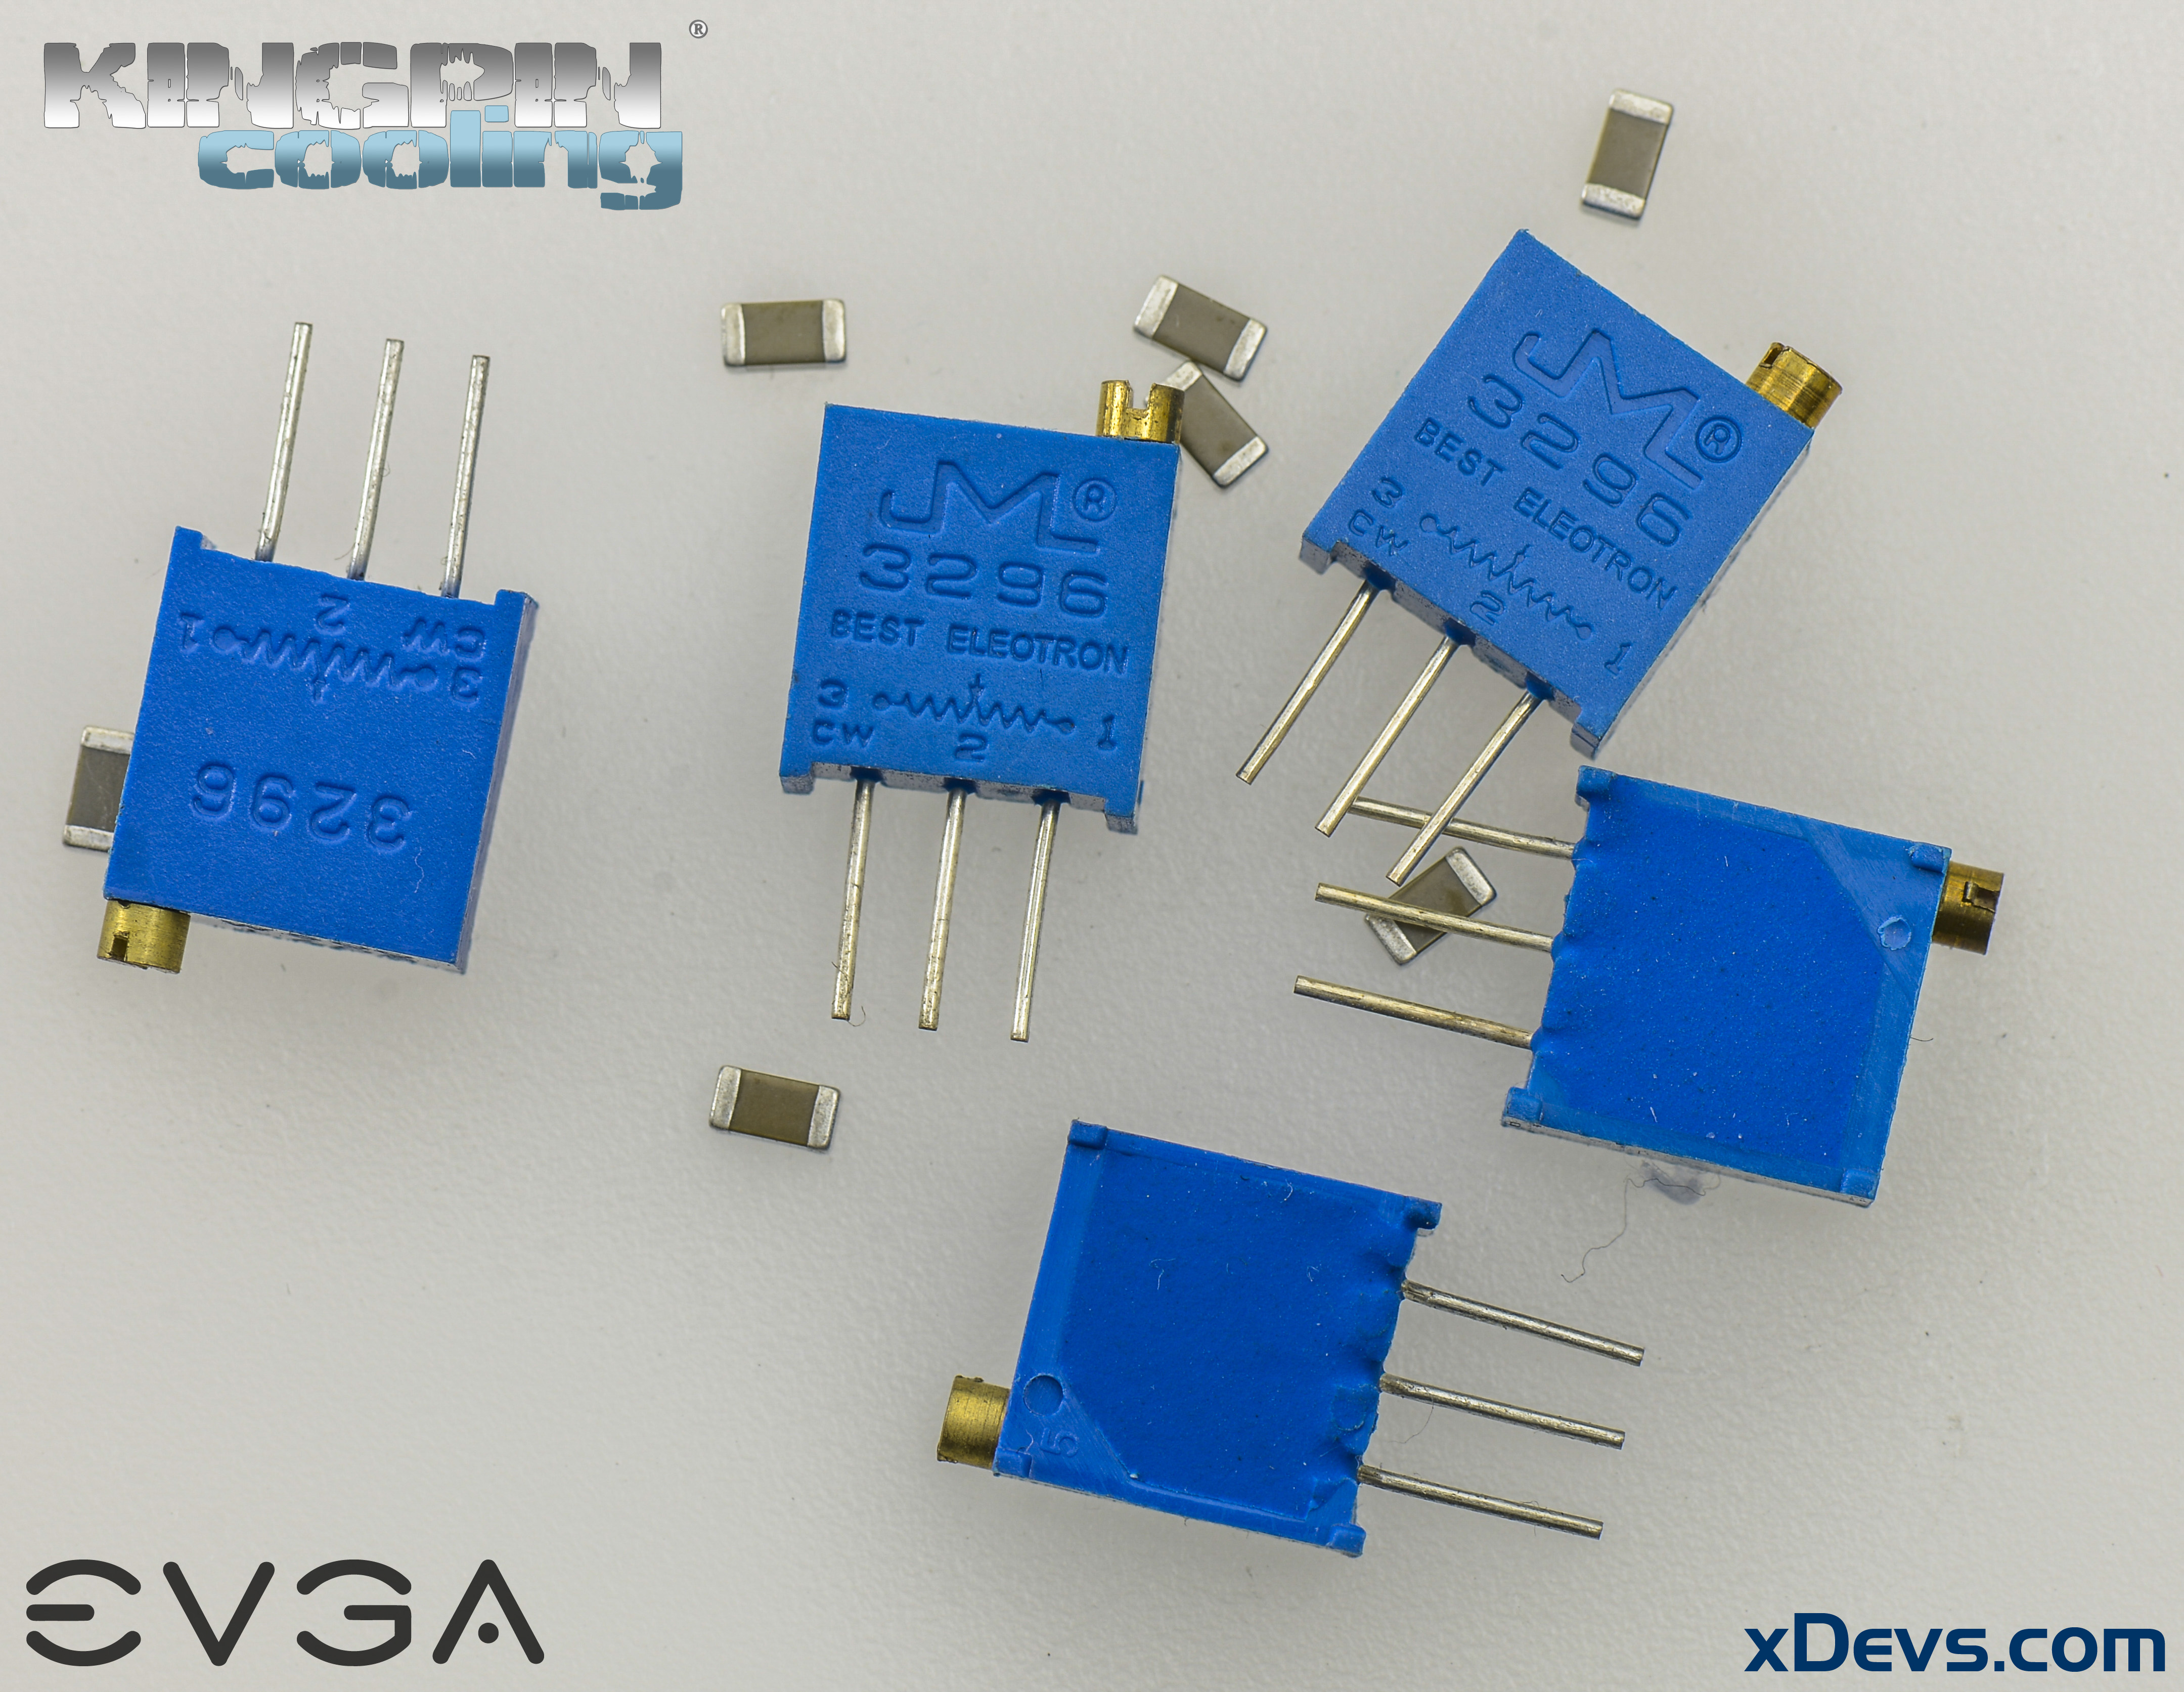 Extreme Oc Modifications For Evga Geforce Gtx 1080 1070 Fe 5 Phase Stepper Motor Wiring Diagram Image Trimmer Resistors And Ceramic Capacitors Example